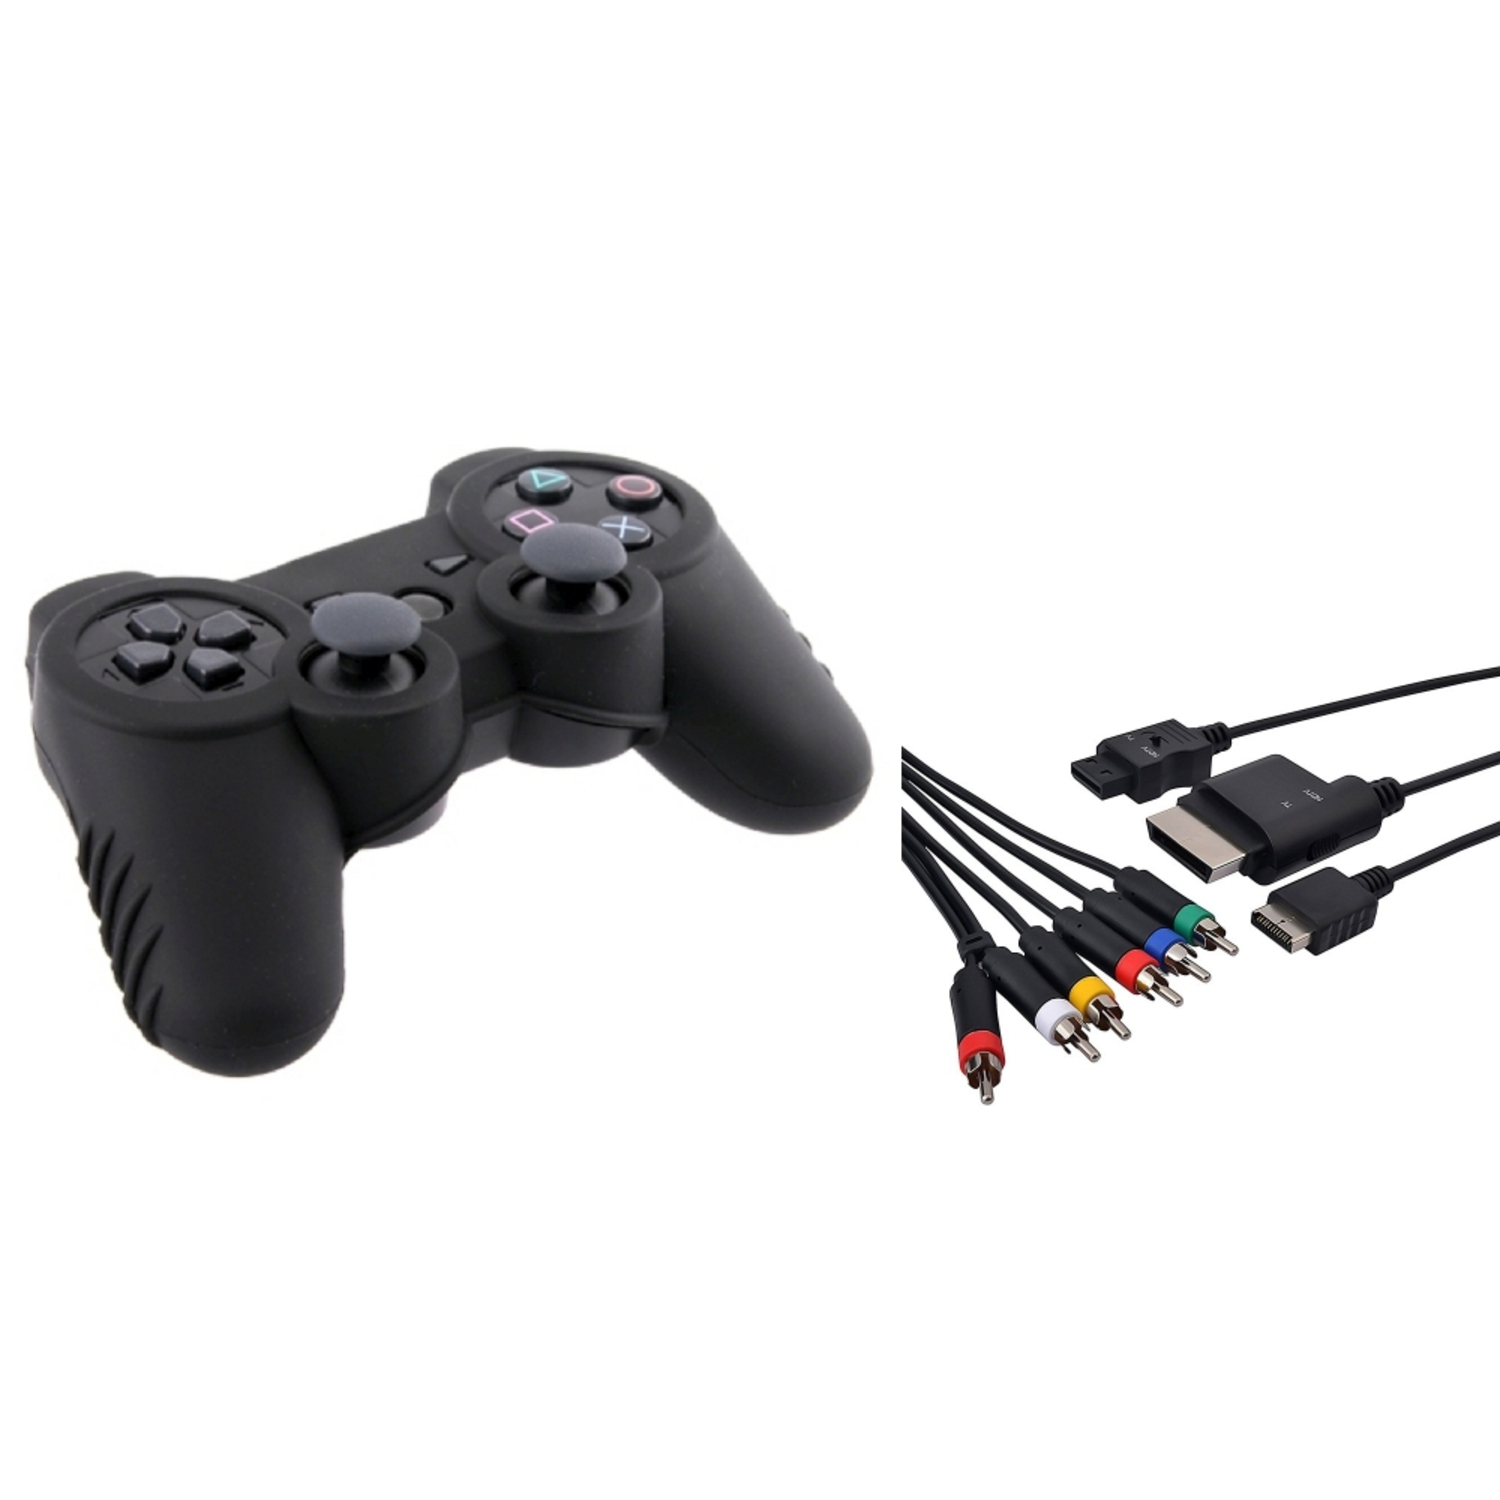 Insten 4-IN-1 AV Audio Video COMPONENT HDTV CABLE CORD+CONTROLLER SKIN CASE FOR PS3